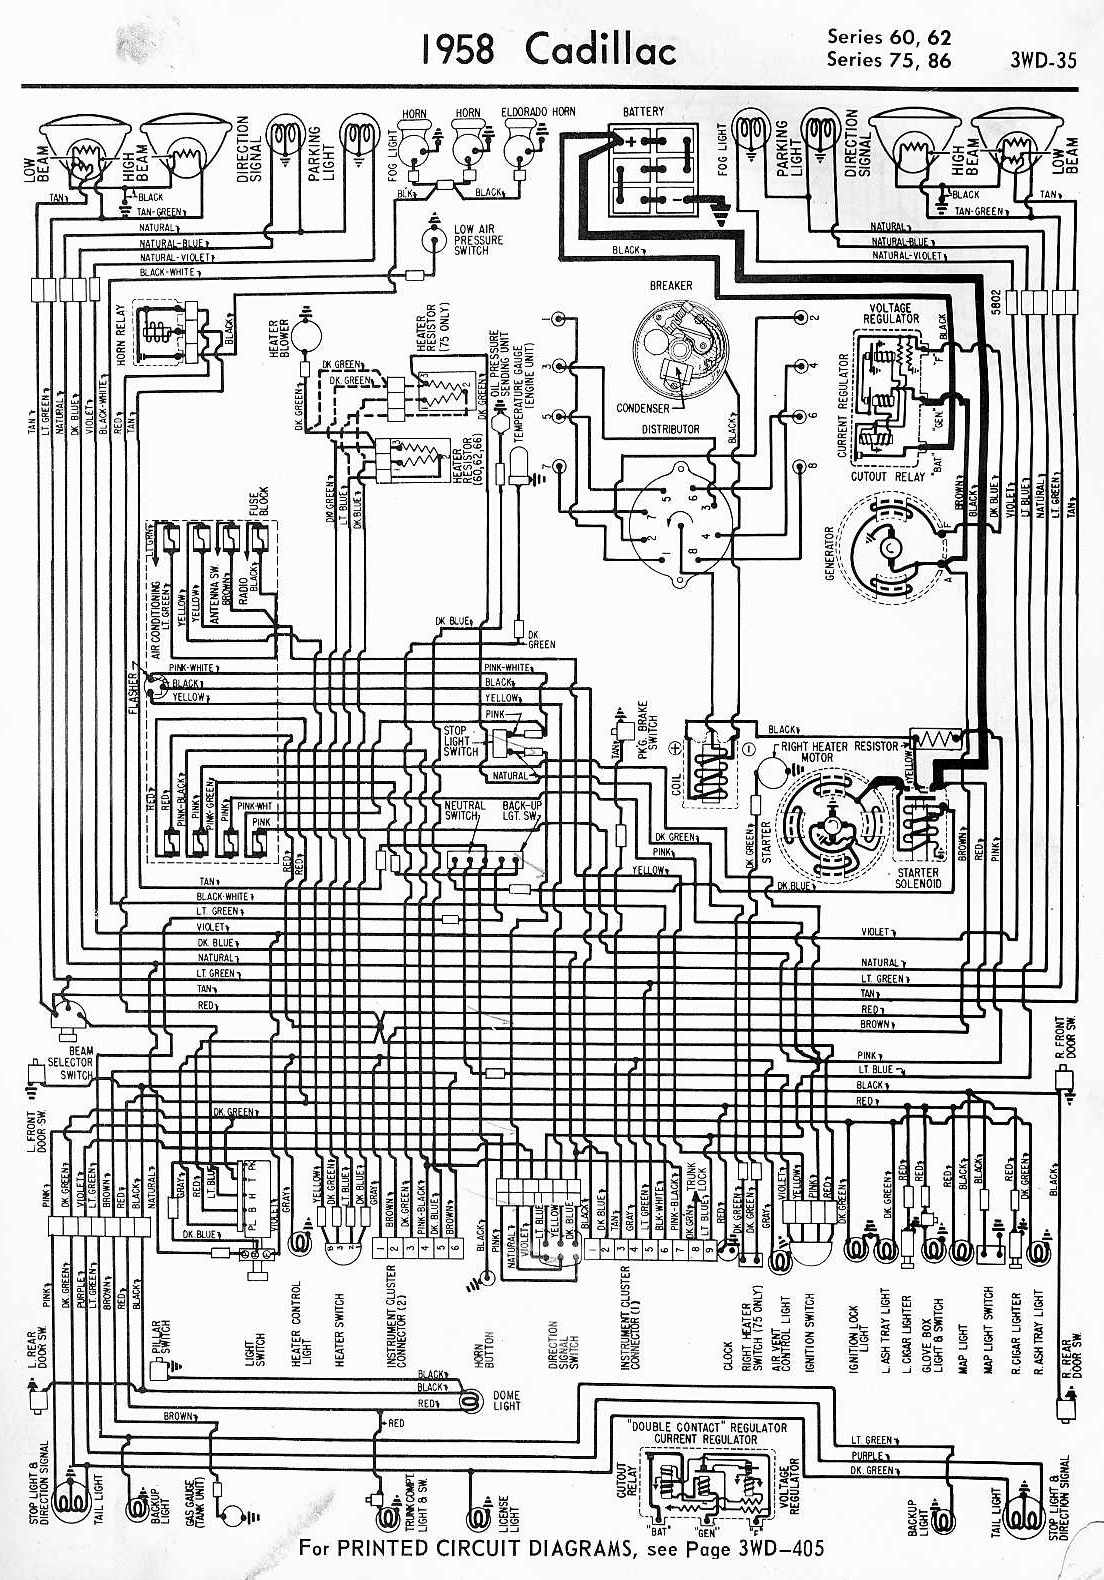 [DIAGRAM_38ZD]  CADILLAC - Car PDF Manual, Wiring Diagram & Fault Codes DTC | 1966 Cadillac Wiring Diagram |  | automotive-manuals.net